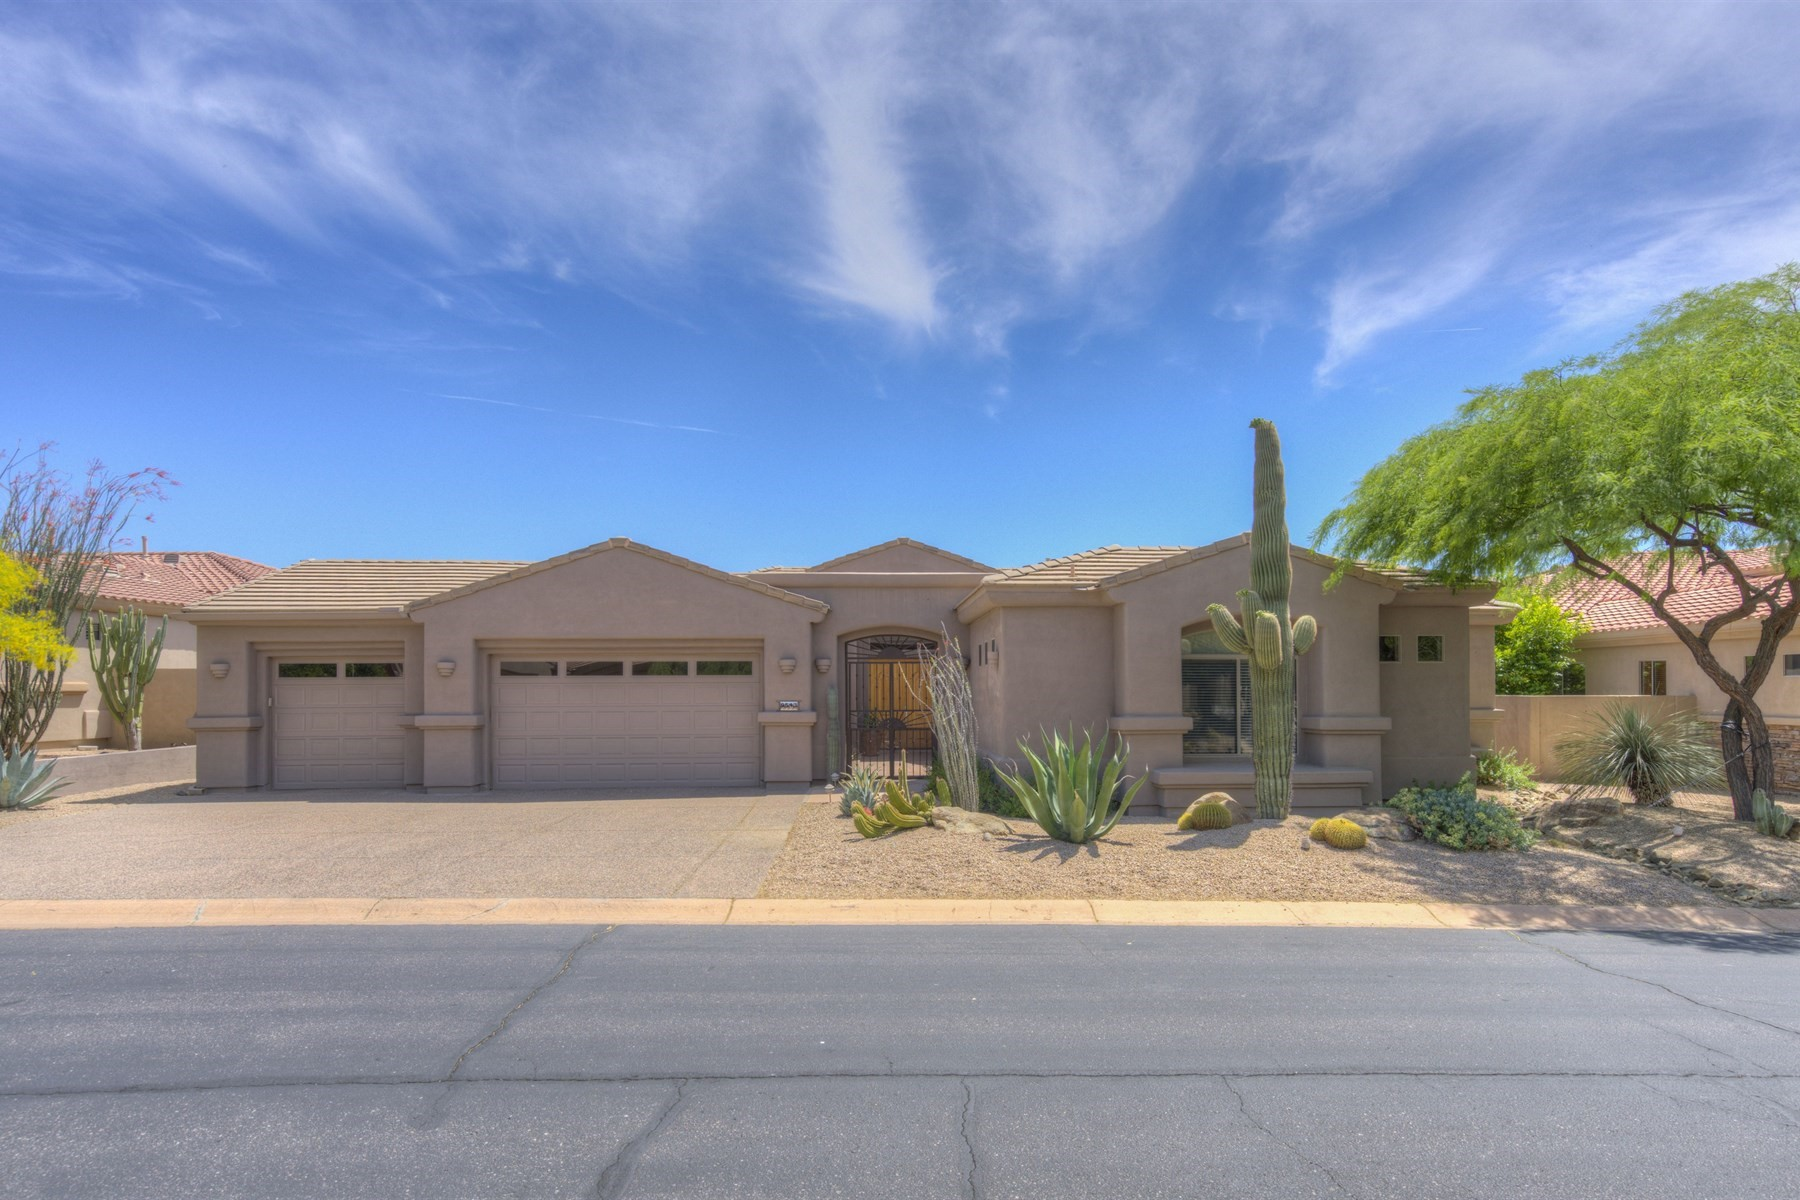 Single Family Home for Sale at Spectacular home with sweeping views 9543 E Preserve Way Scottsdale, Arizona, 85262 United States